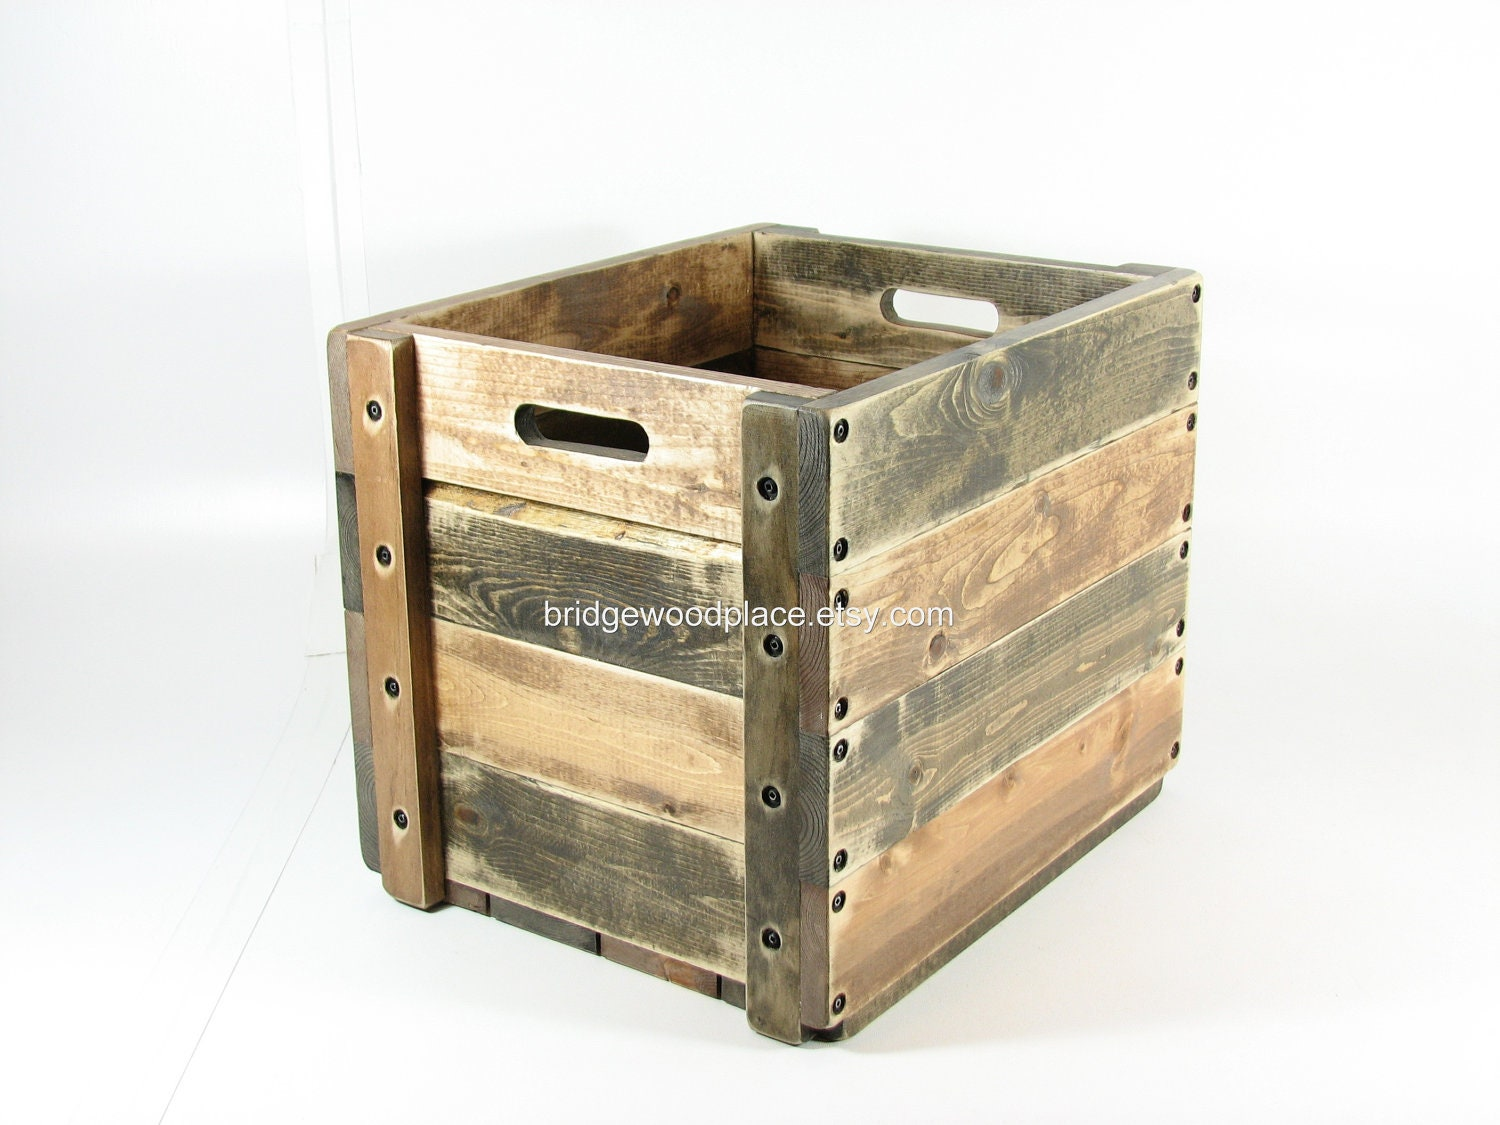 Wood crate wooden box table furniture storage with two toned Wooden crates furniture